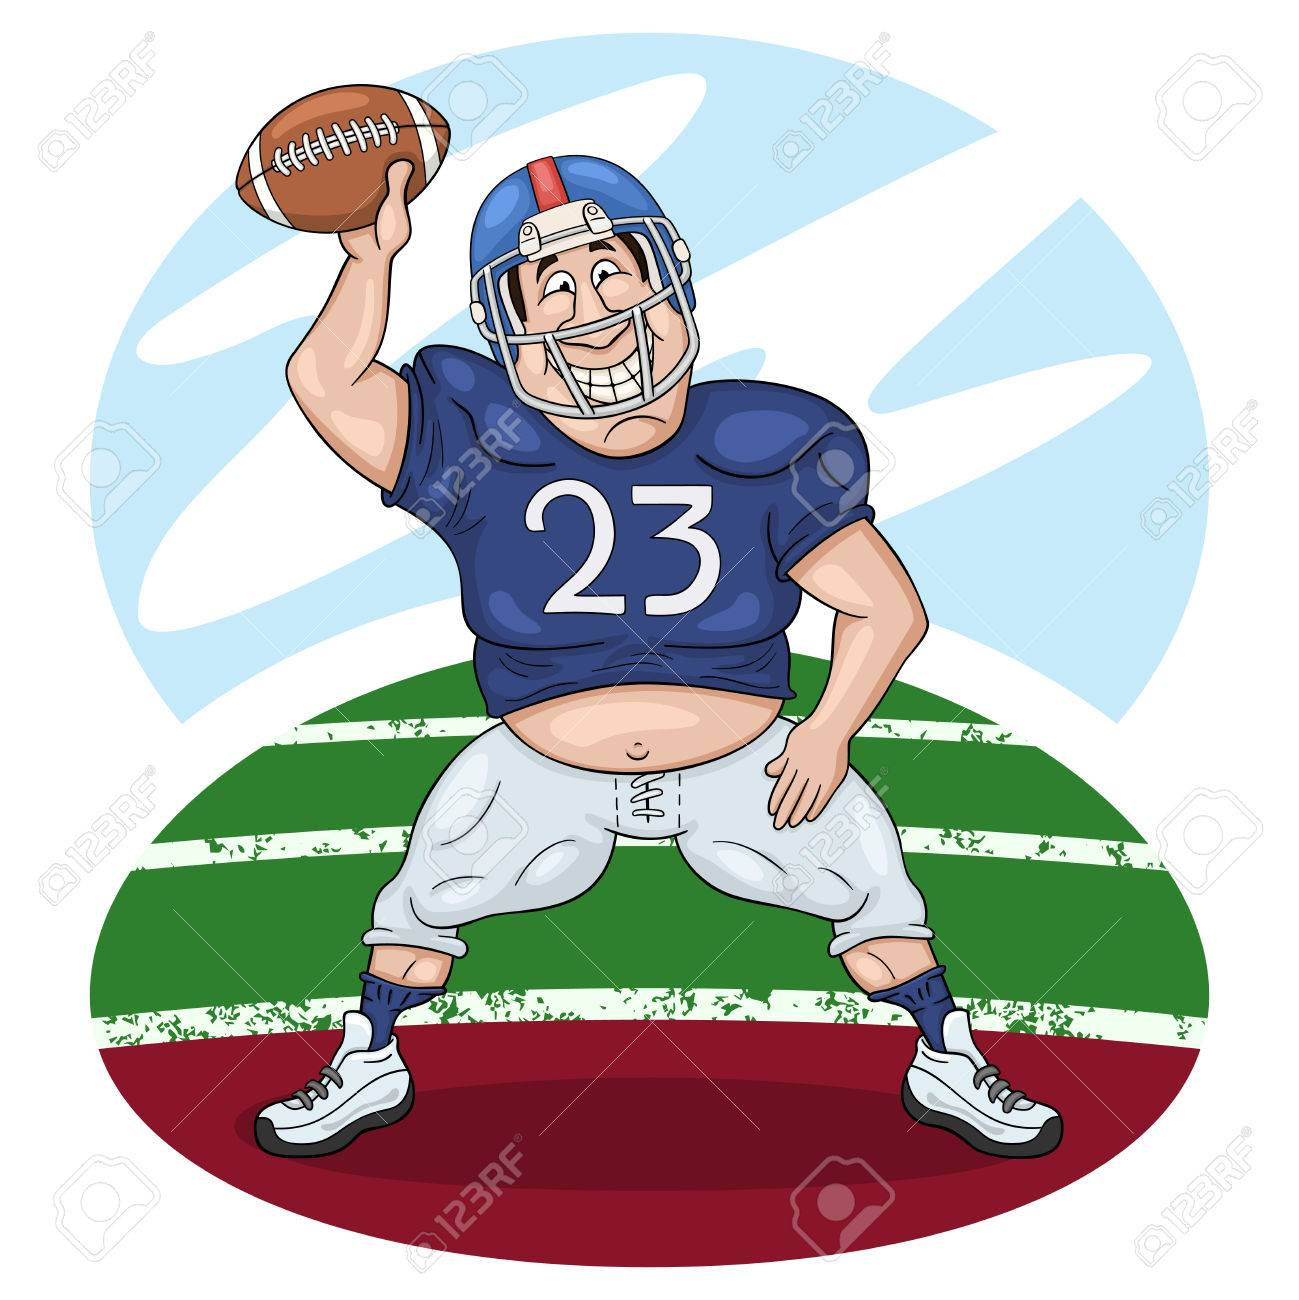 Funny cartoon american football player dancing with a ball in...